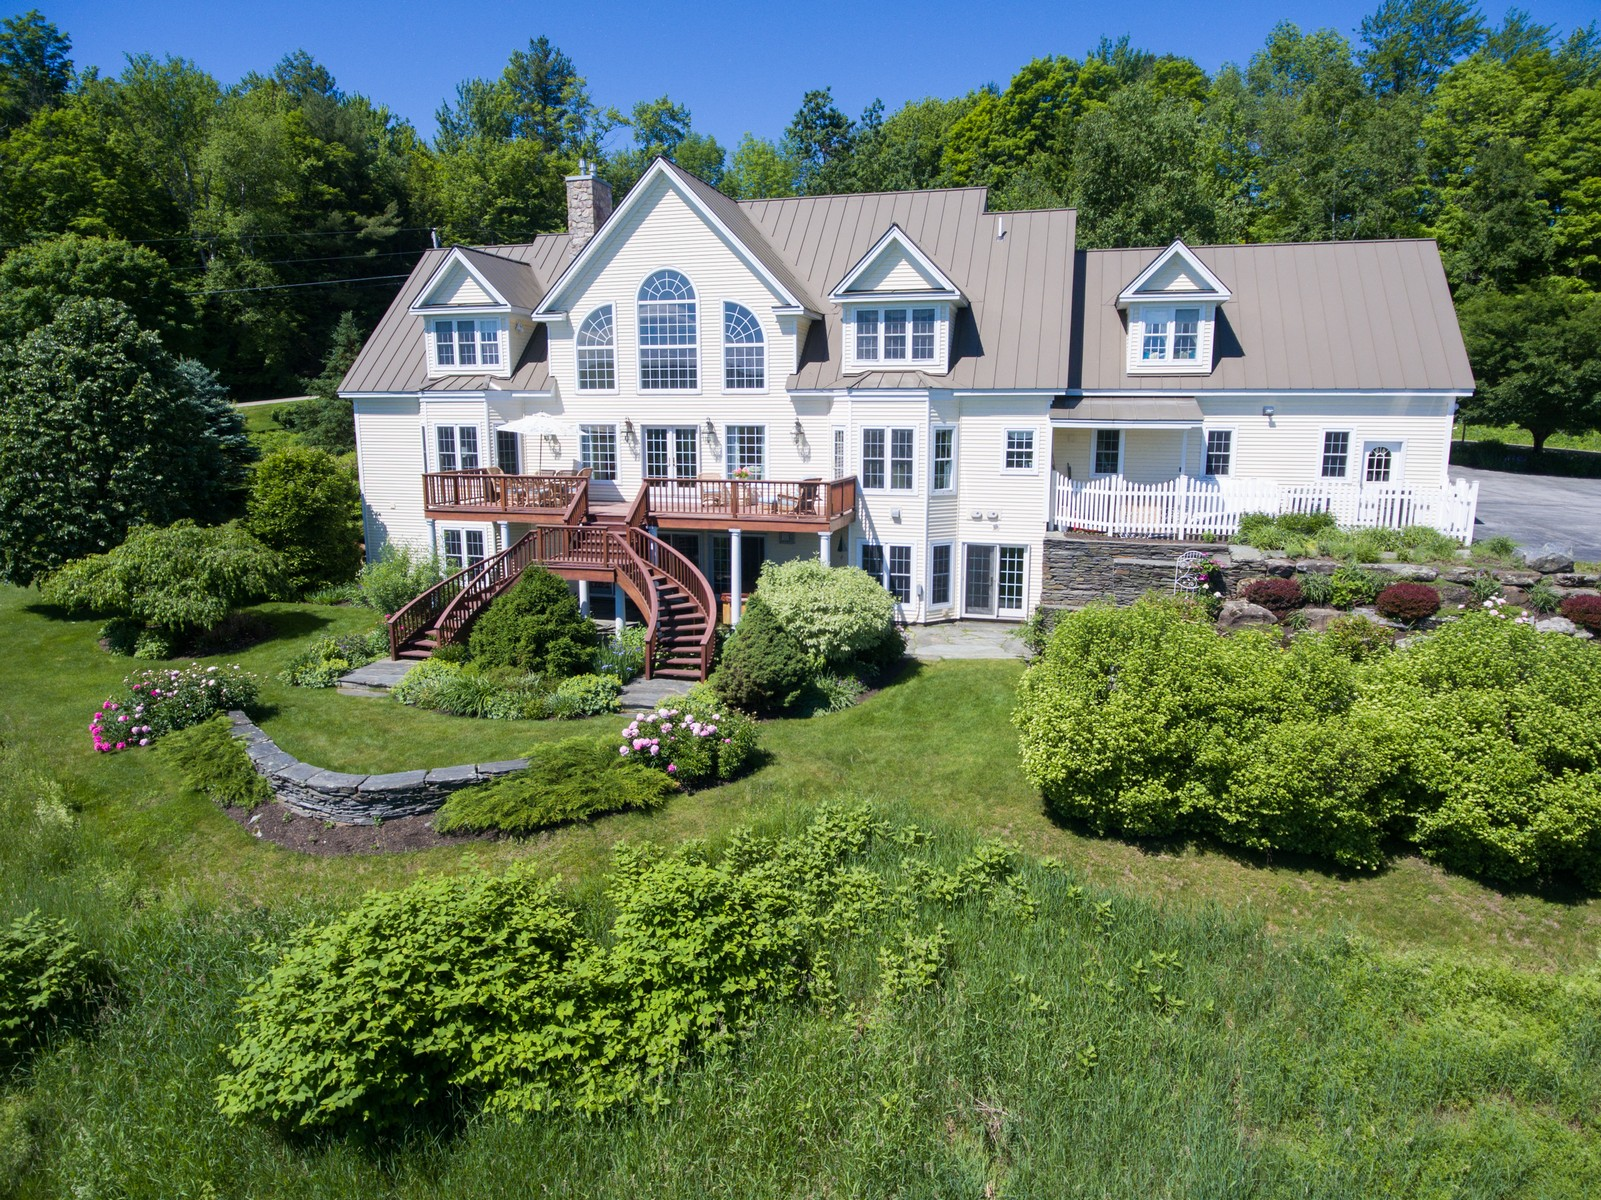 Single Family Home for Sale at Panaramic views of Worcester Range 36 Snowshoe Trl Waterbury, Vermont, 05676 United States